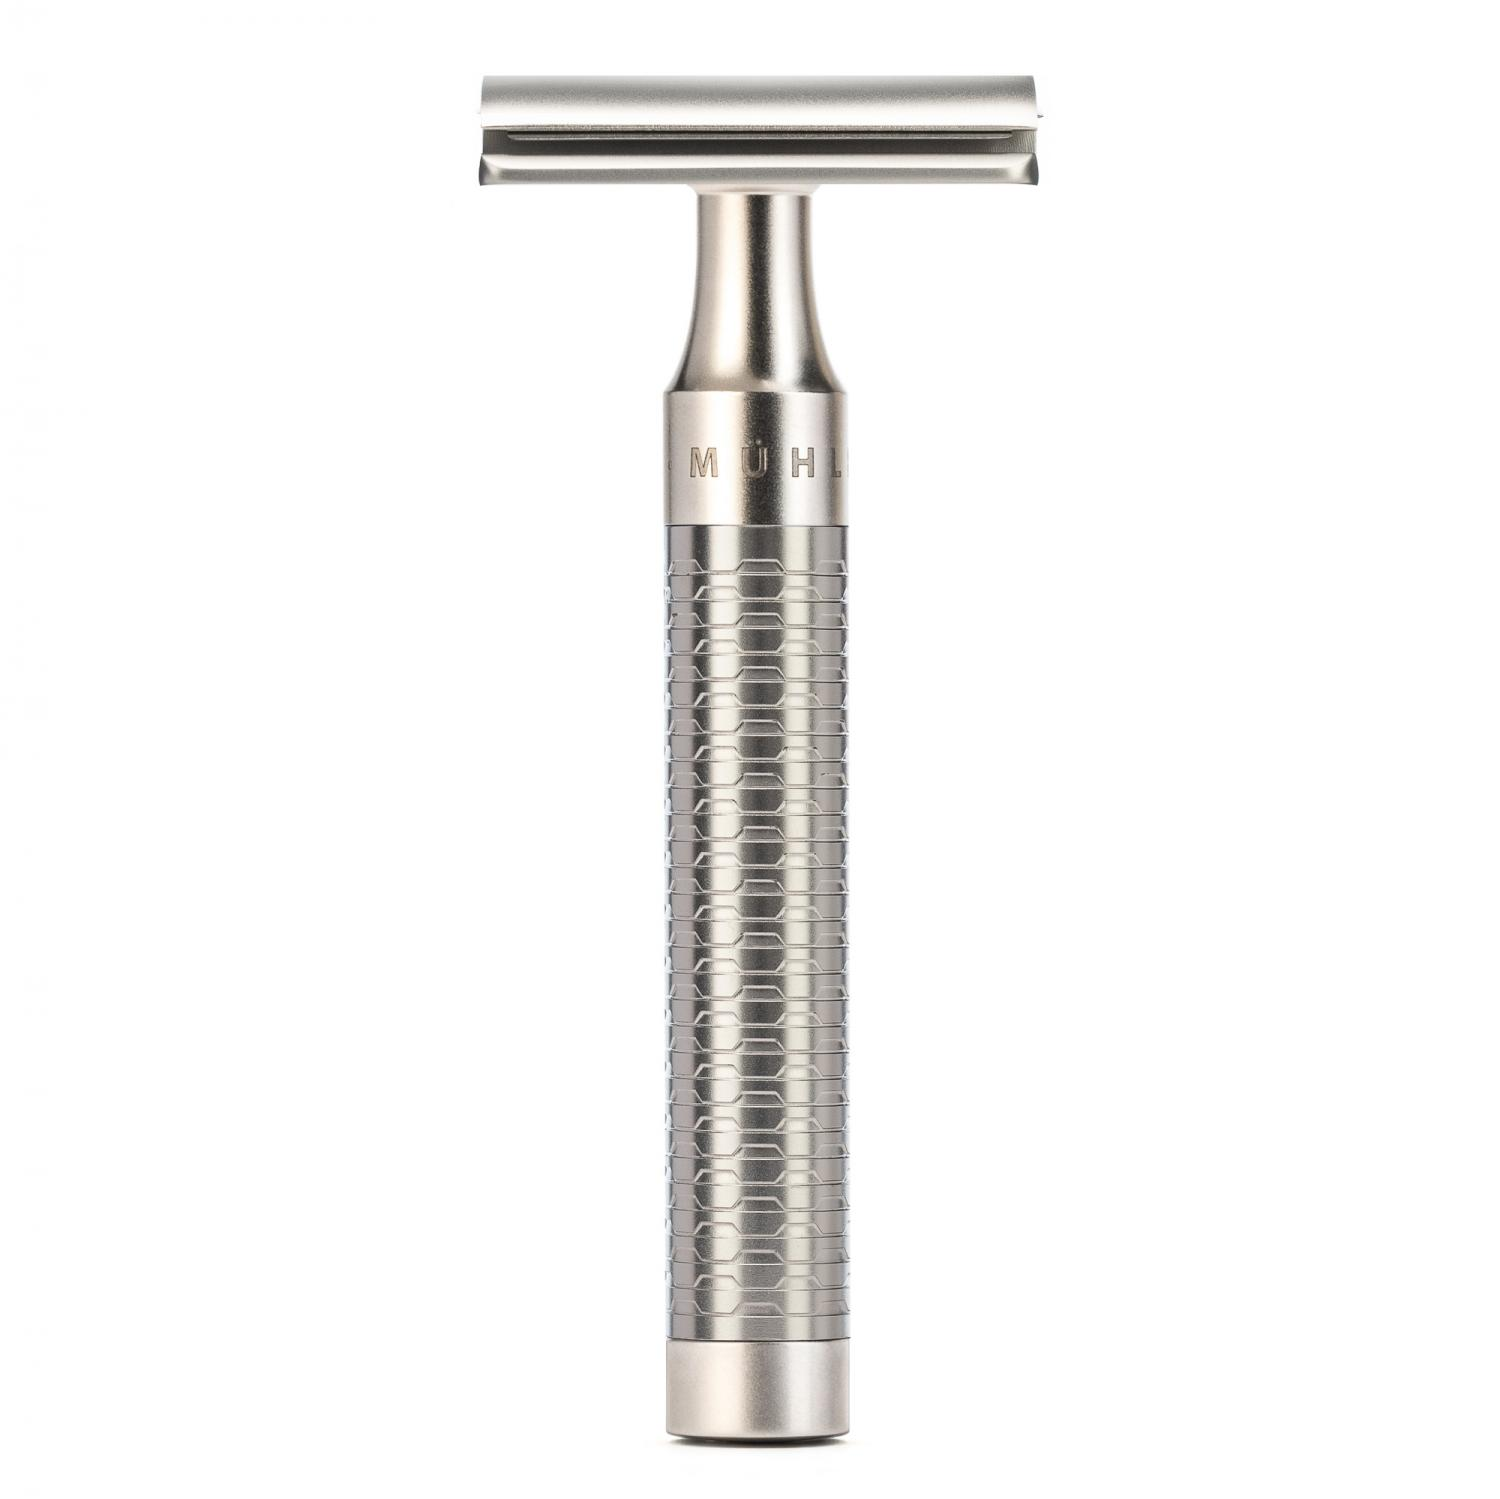 ROCCA Pure Matt Stainless Steel Safety Razor